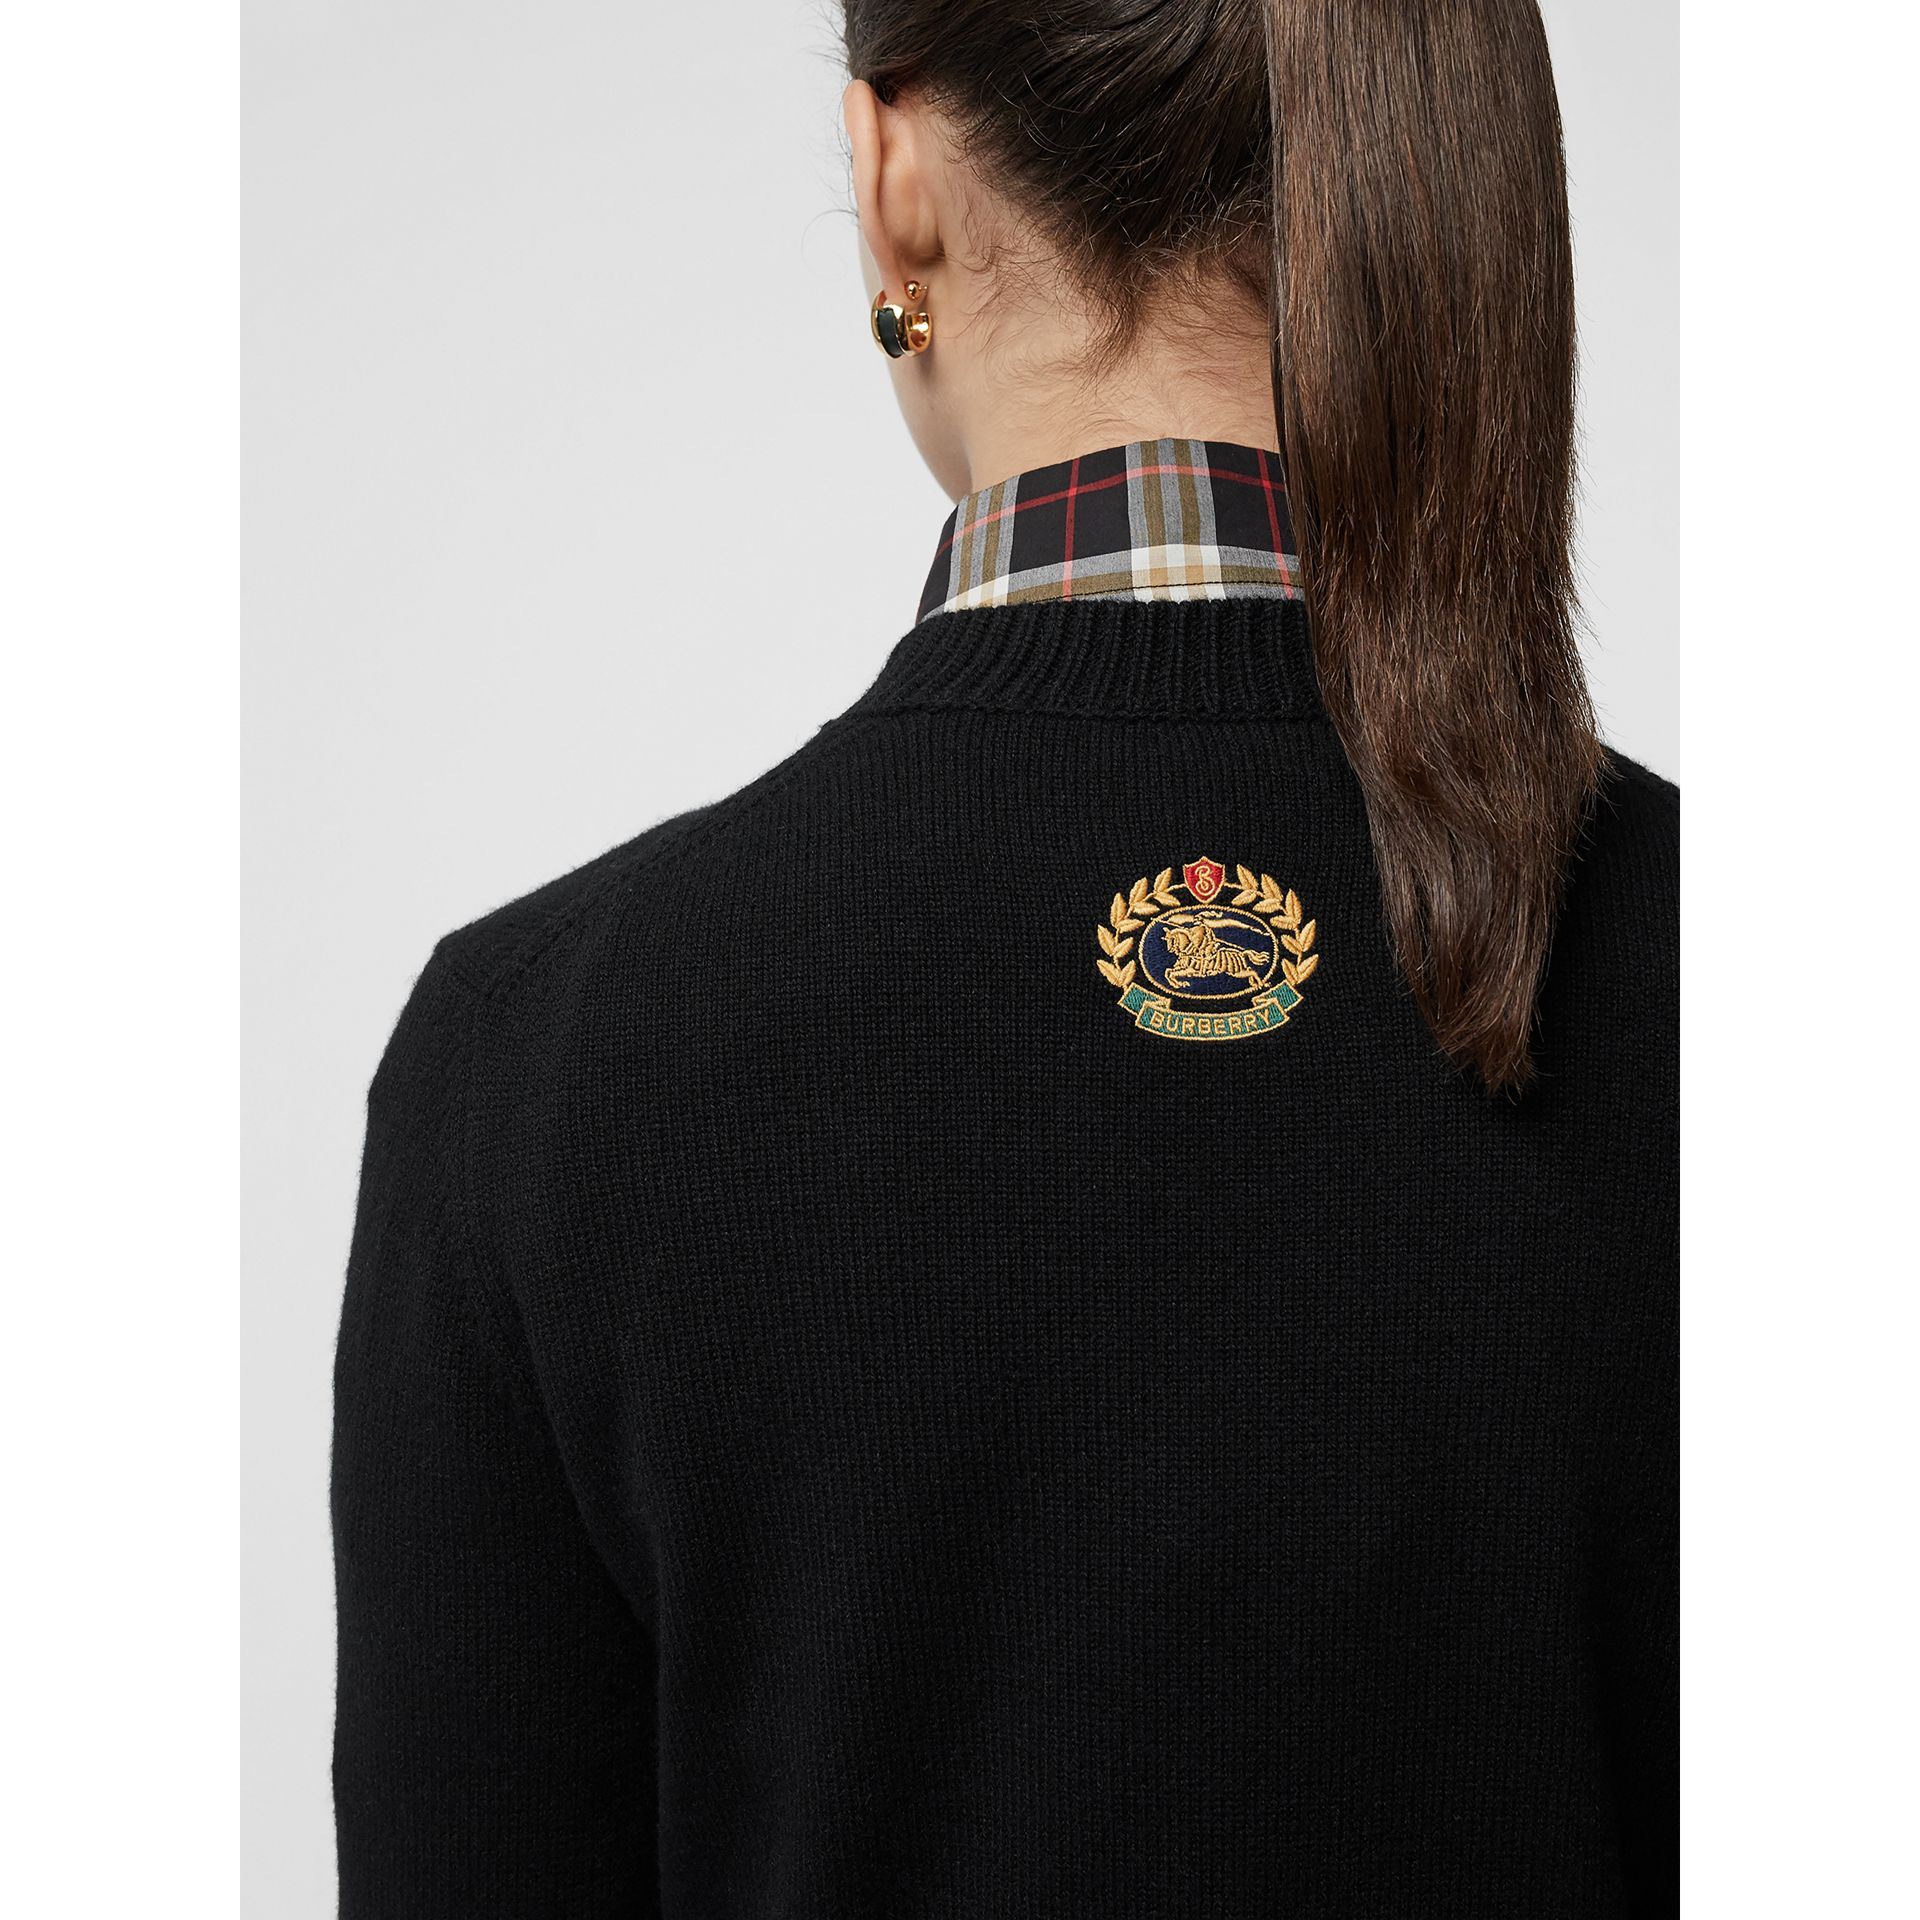 Embroidered Crest Cashmere Sweater in Black - Women | Burberry Hong Kong - gallery image 1